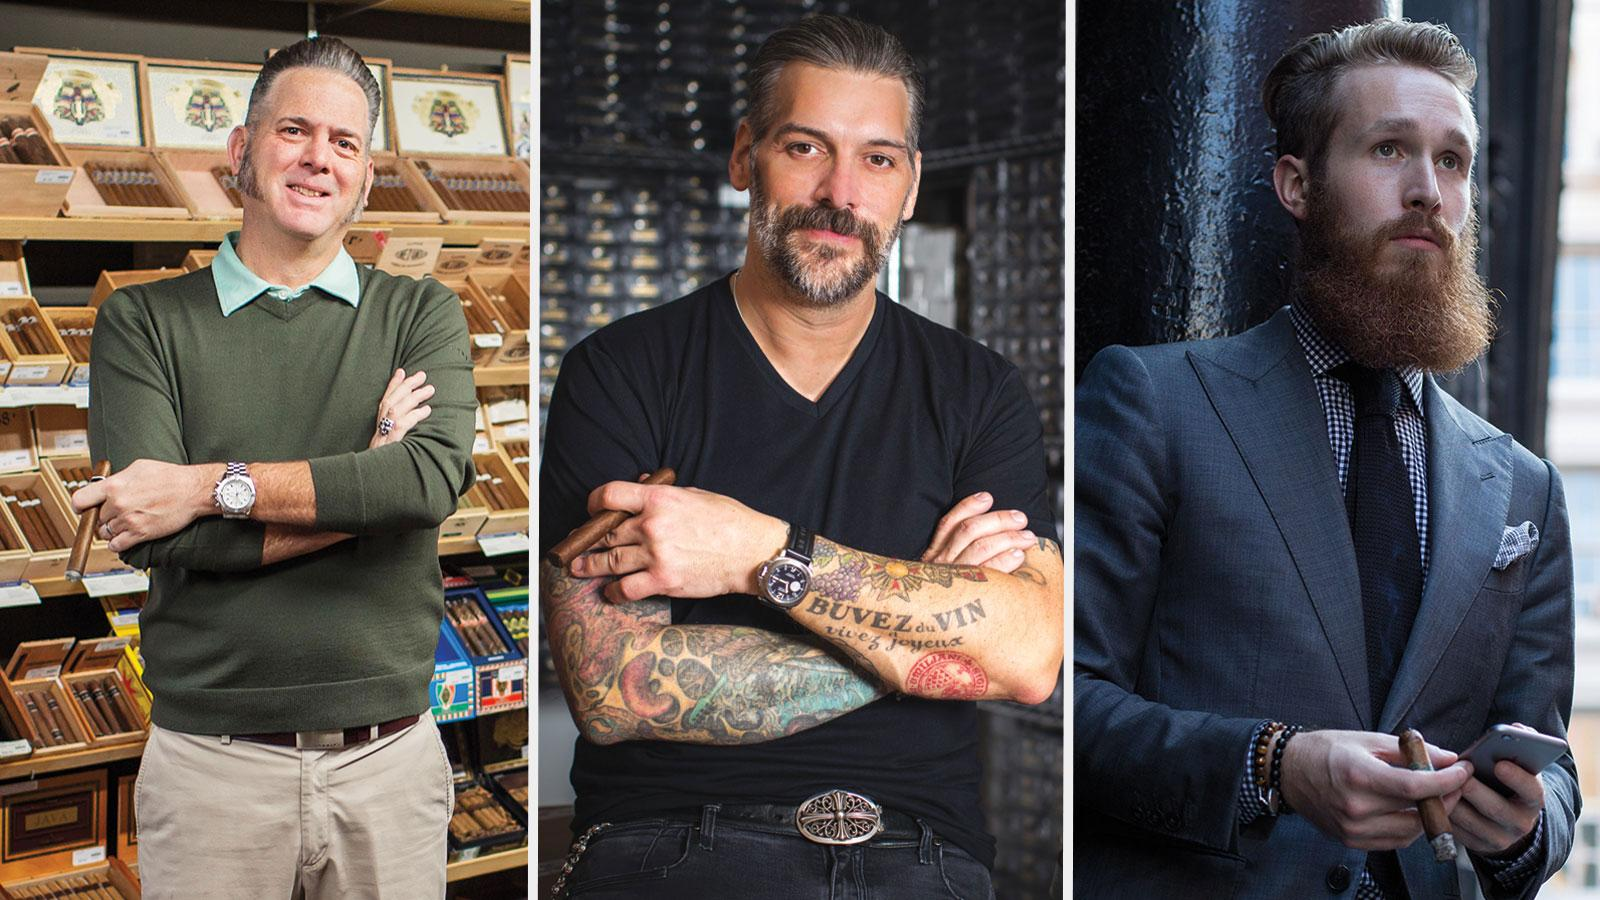 The Cult Cigars seminar will feature Dion Giolito of Illusione, Pete Johnson of Tatuaje and Kyle Gellis of Warped Cigars.